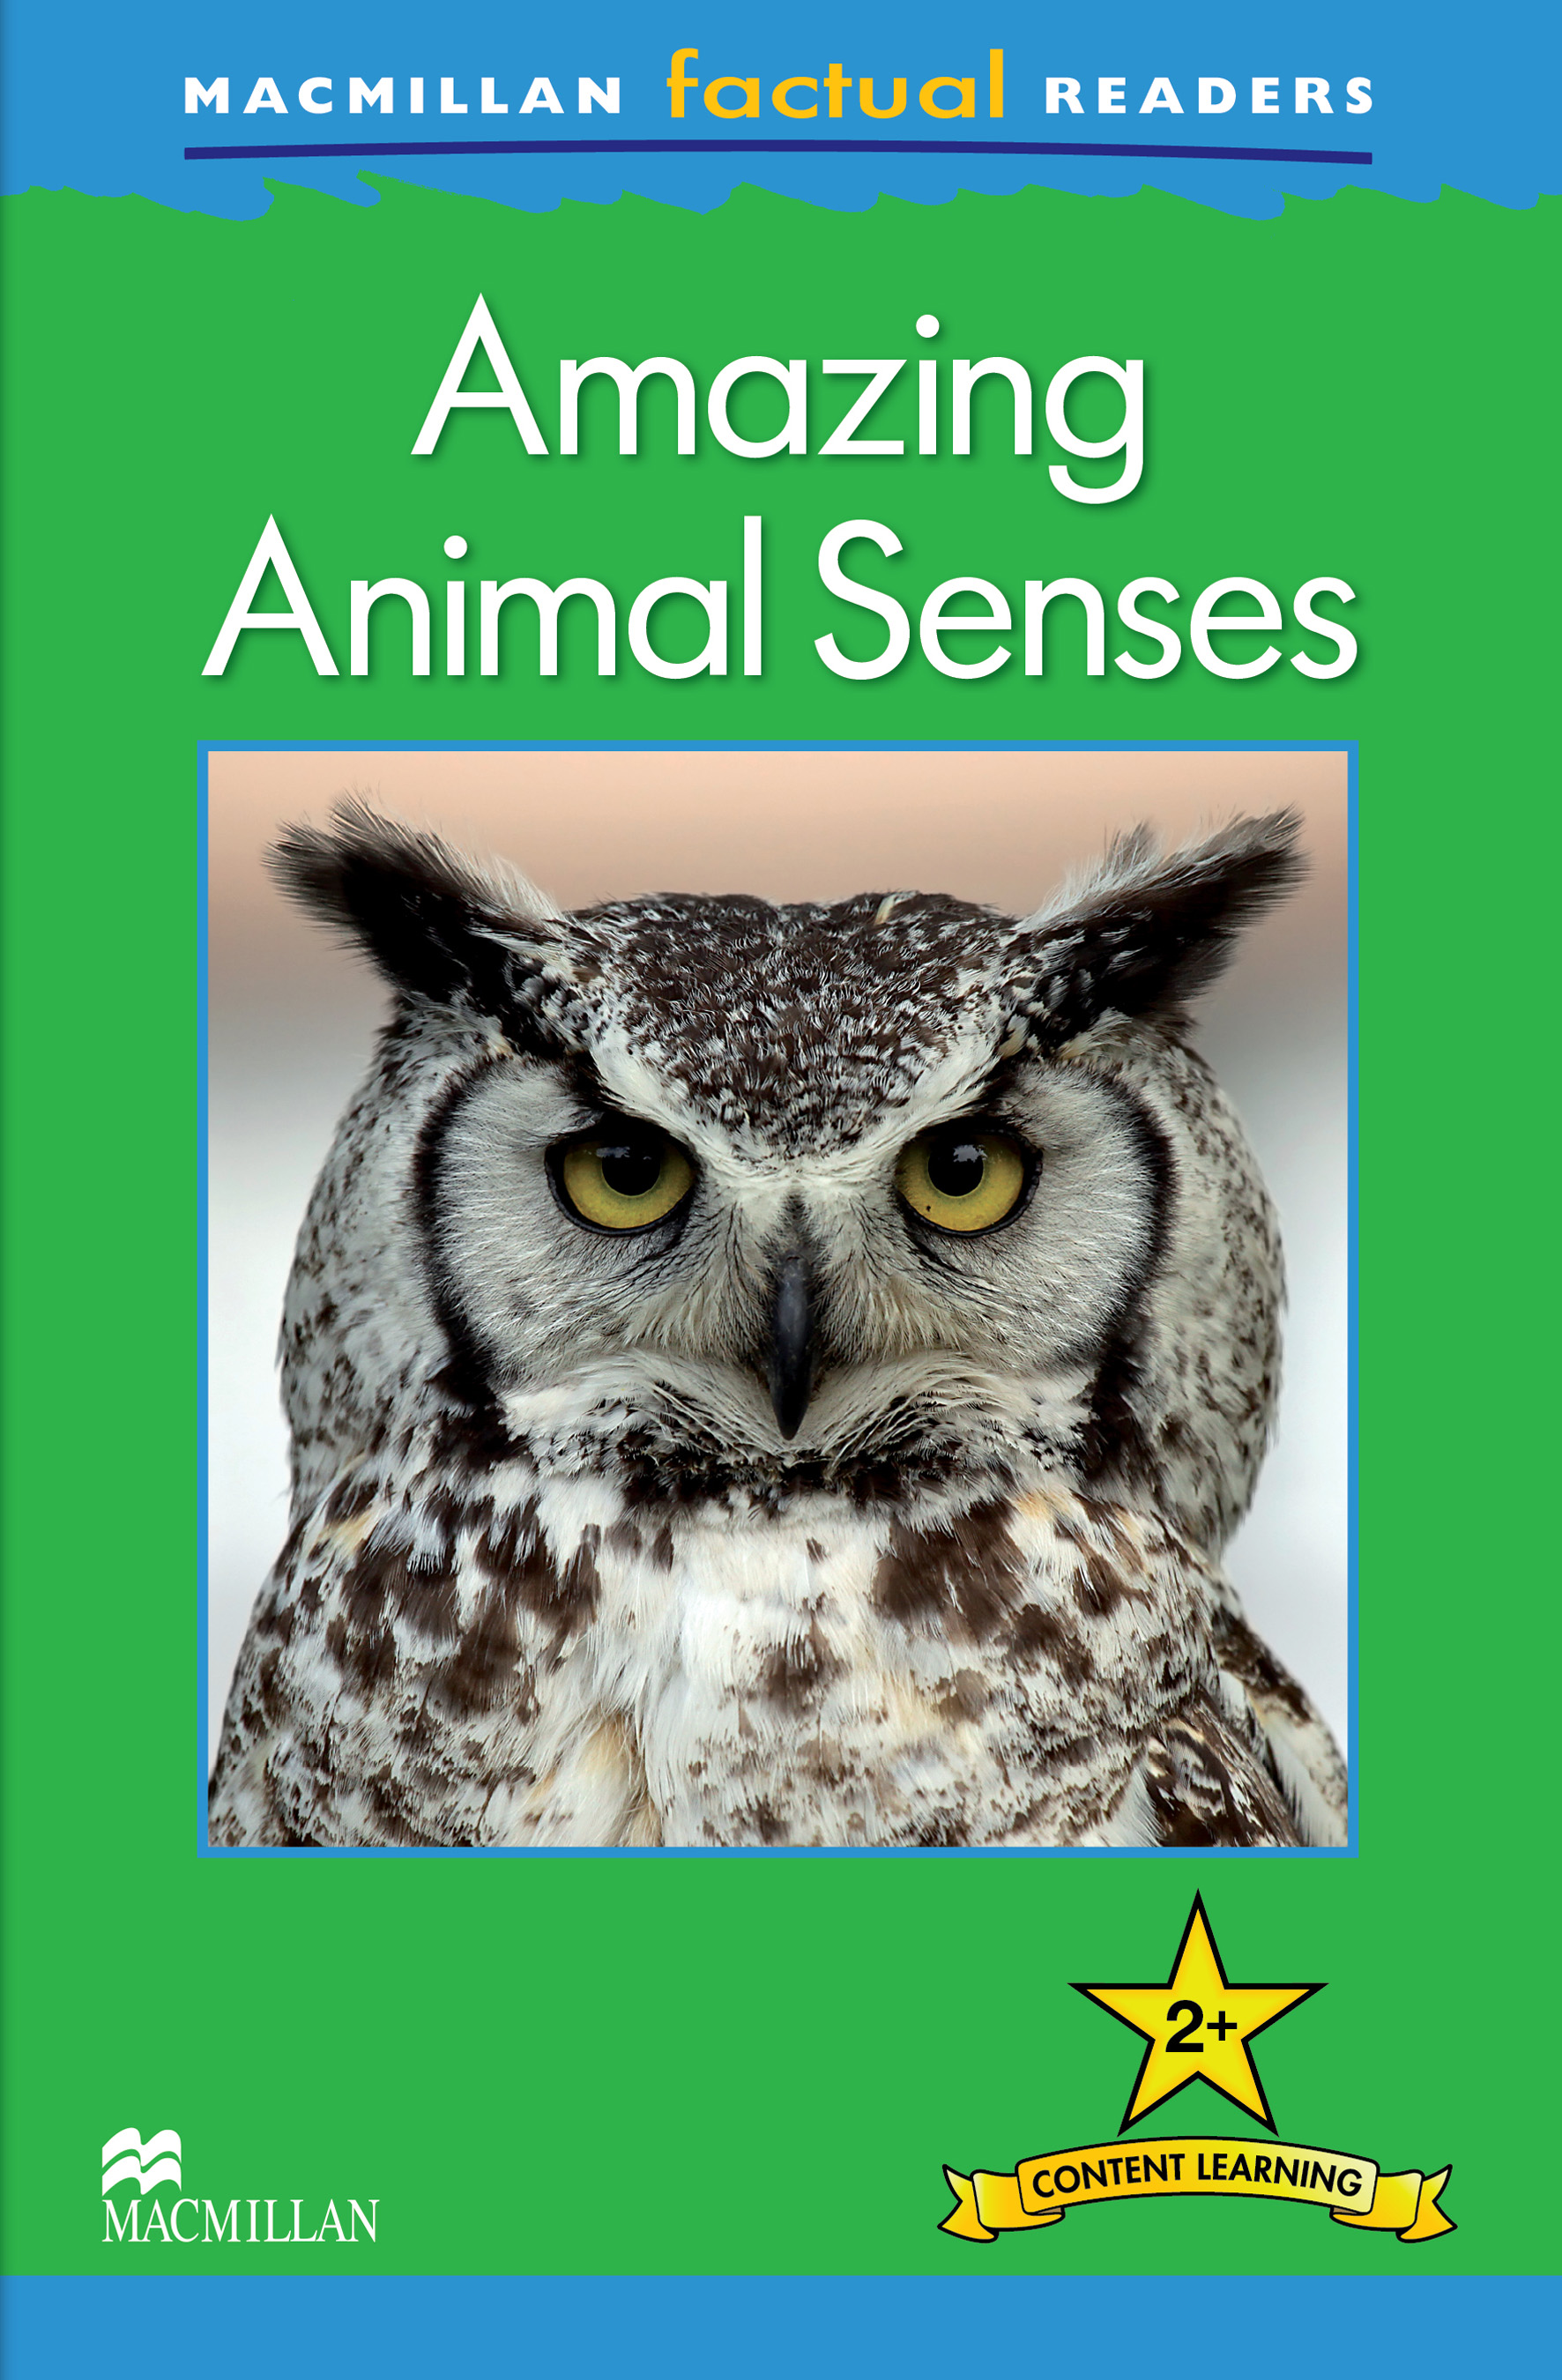 Macmillan Factual Readers: Amazing Animal Senses